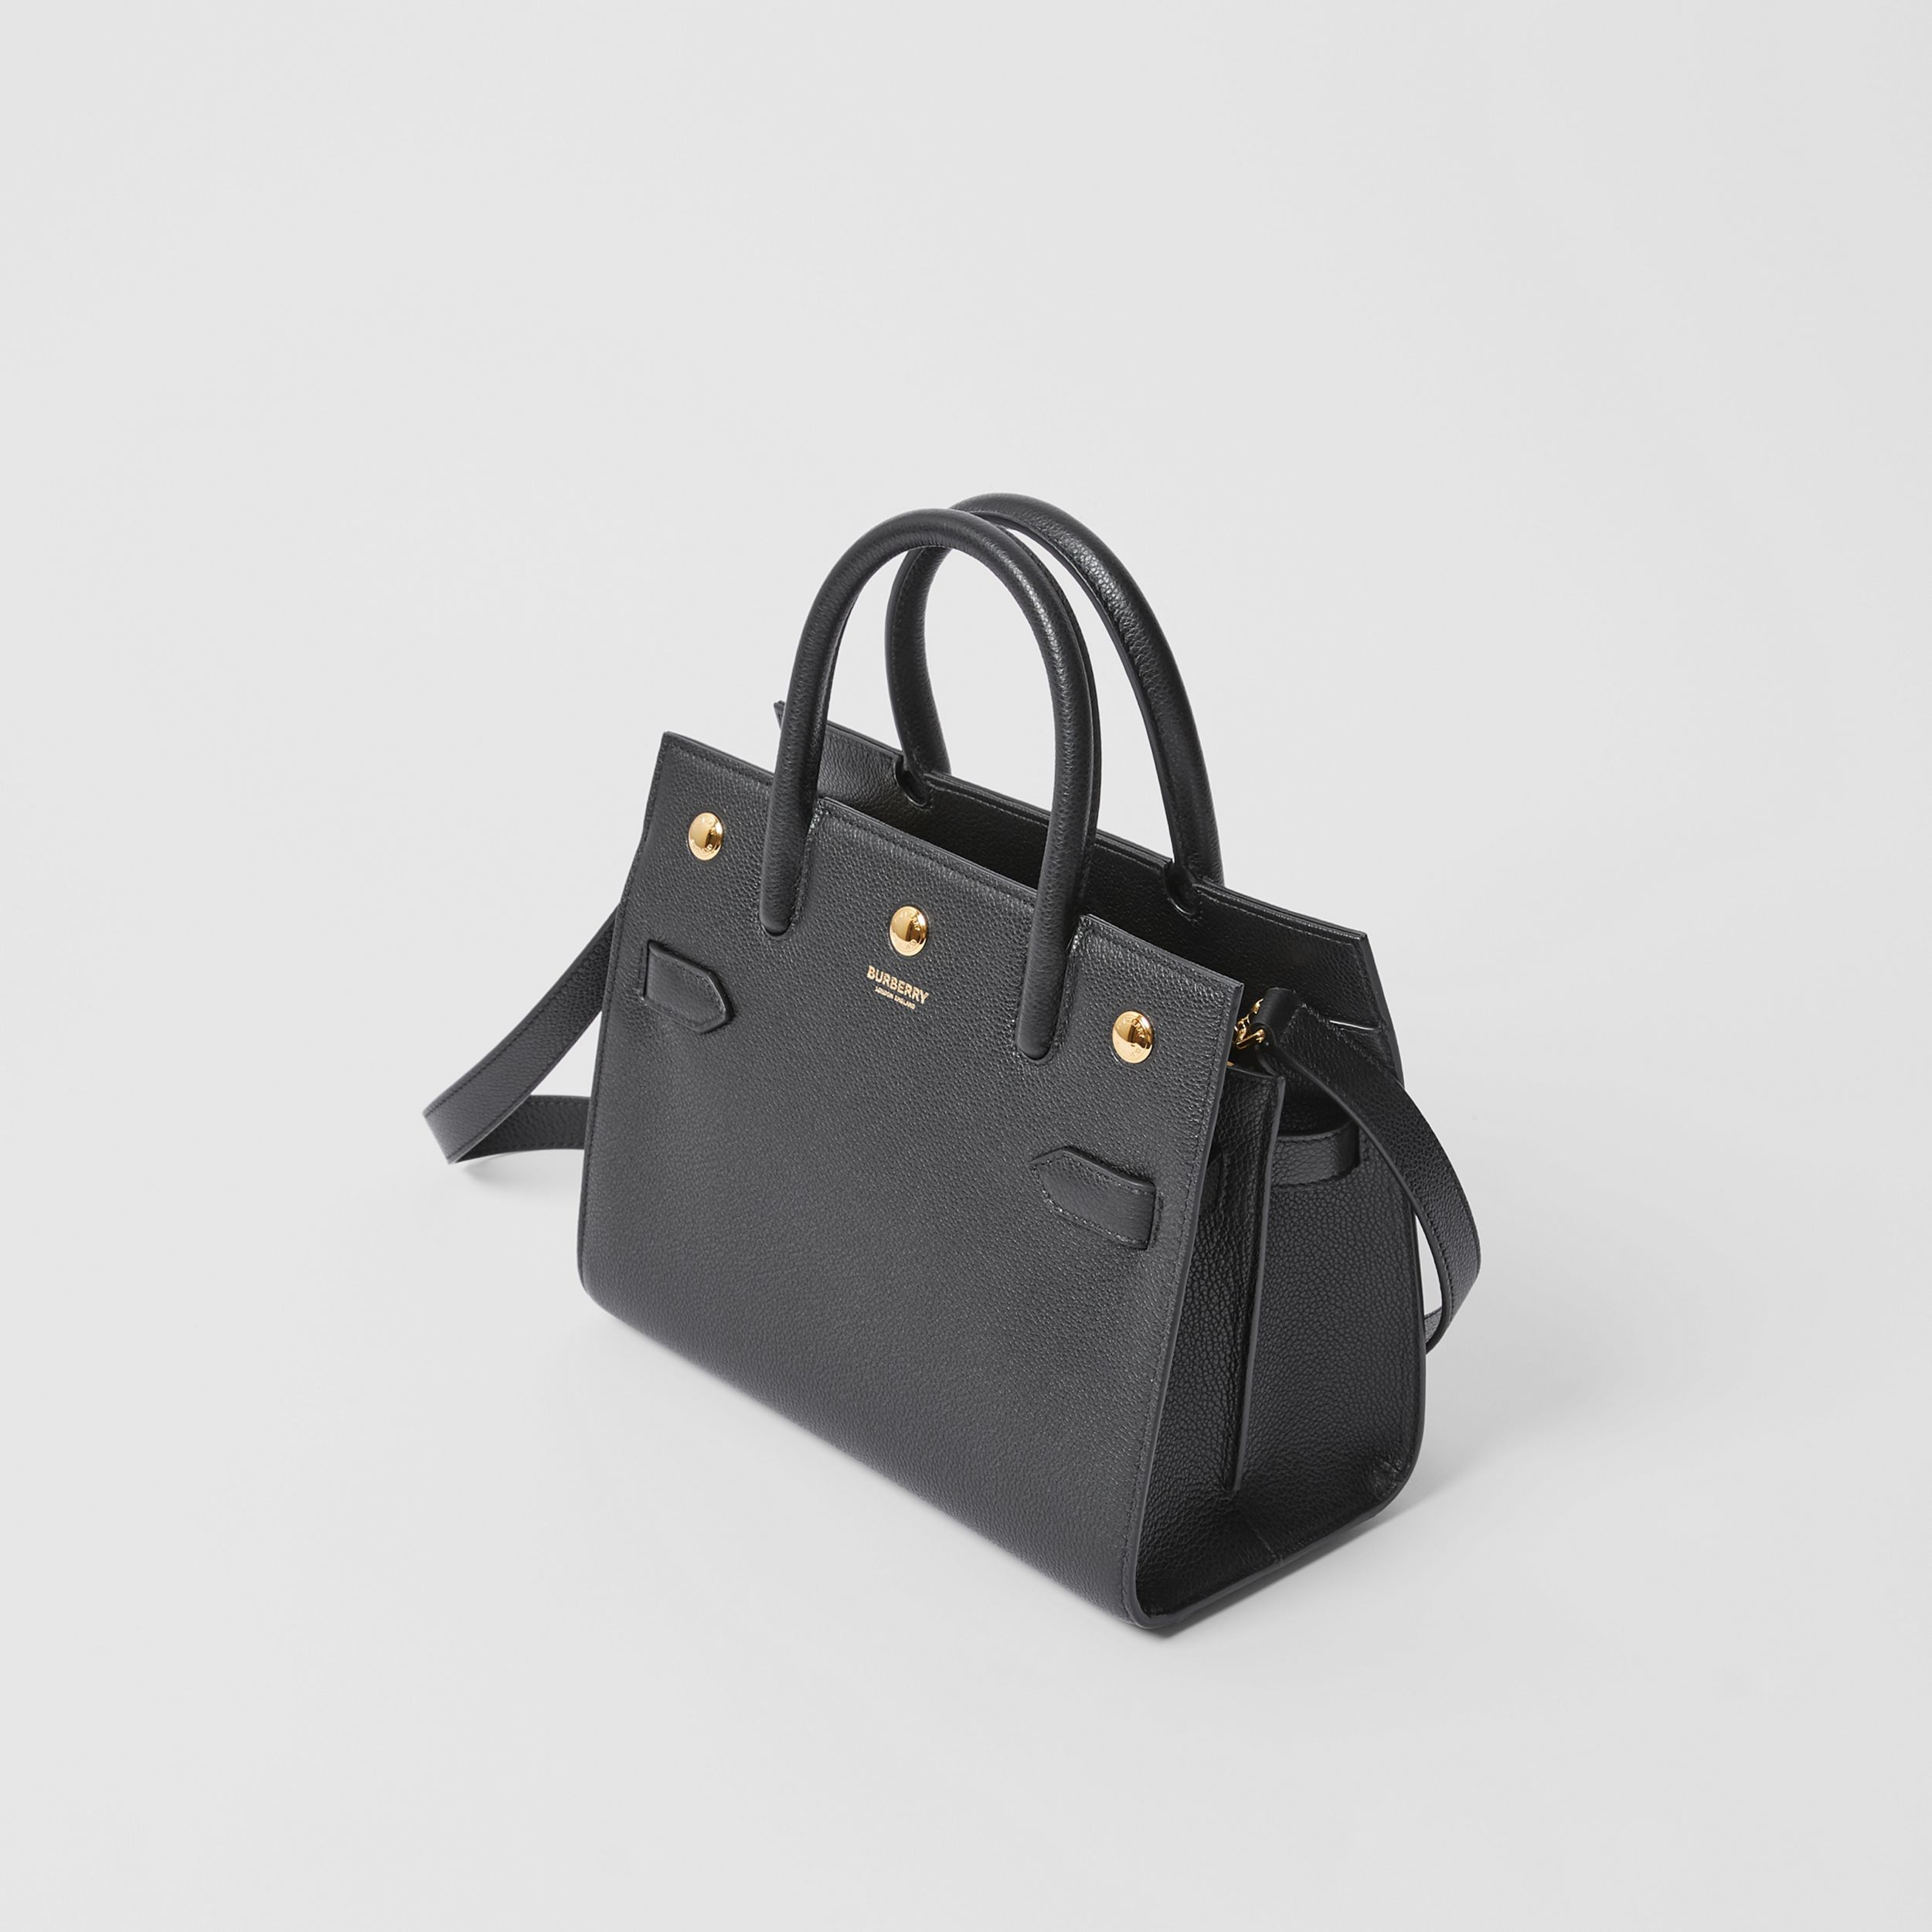 Mini Leather Two-handle Title Bag in Black - Women | Burberry - 4